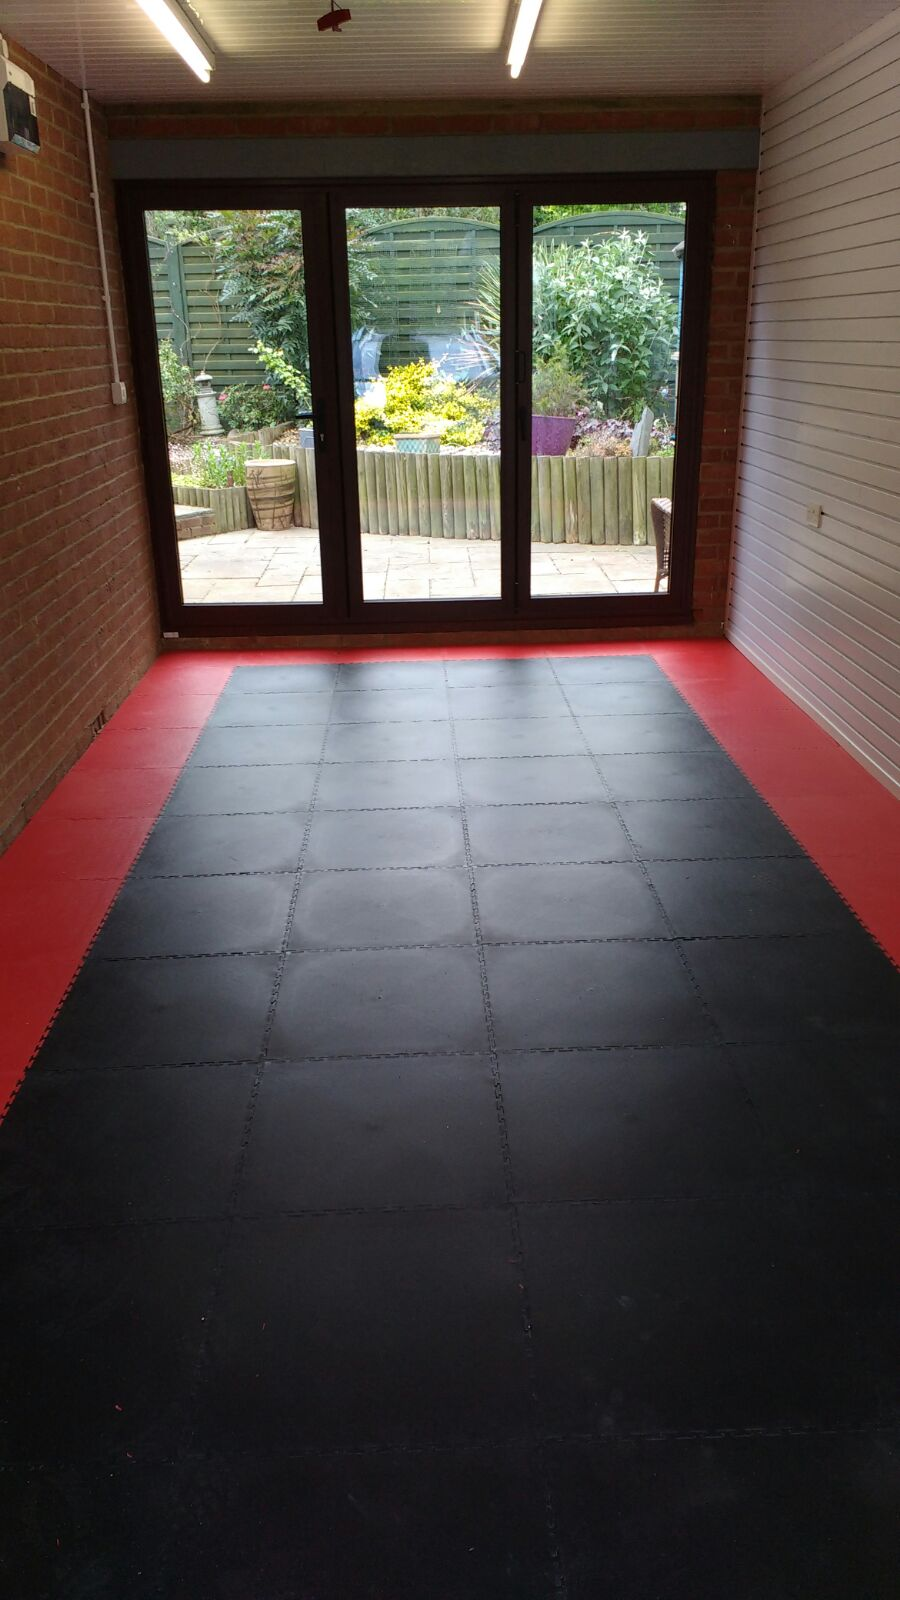 Waltham Abbey Garage Floor TIles Makeover Installation